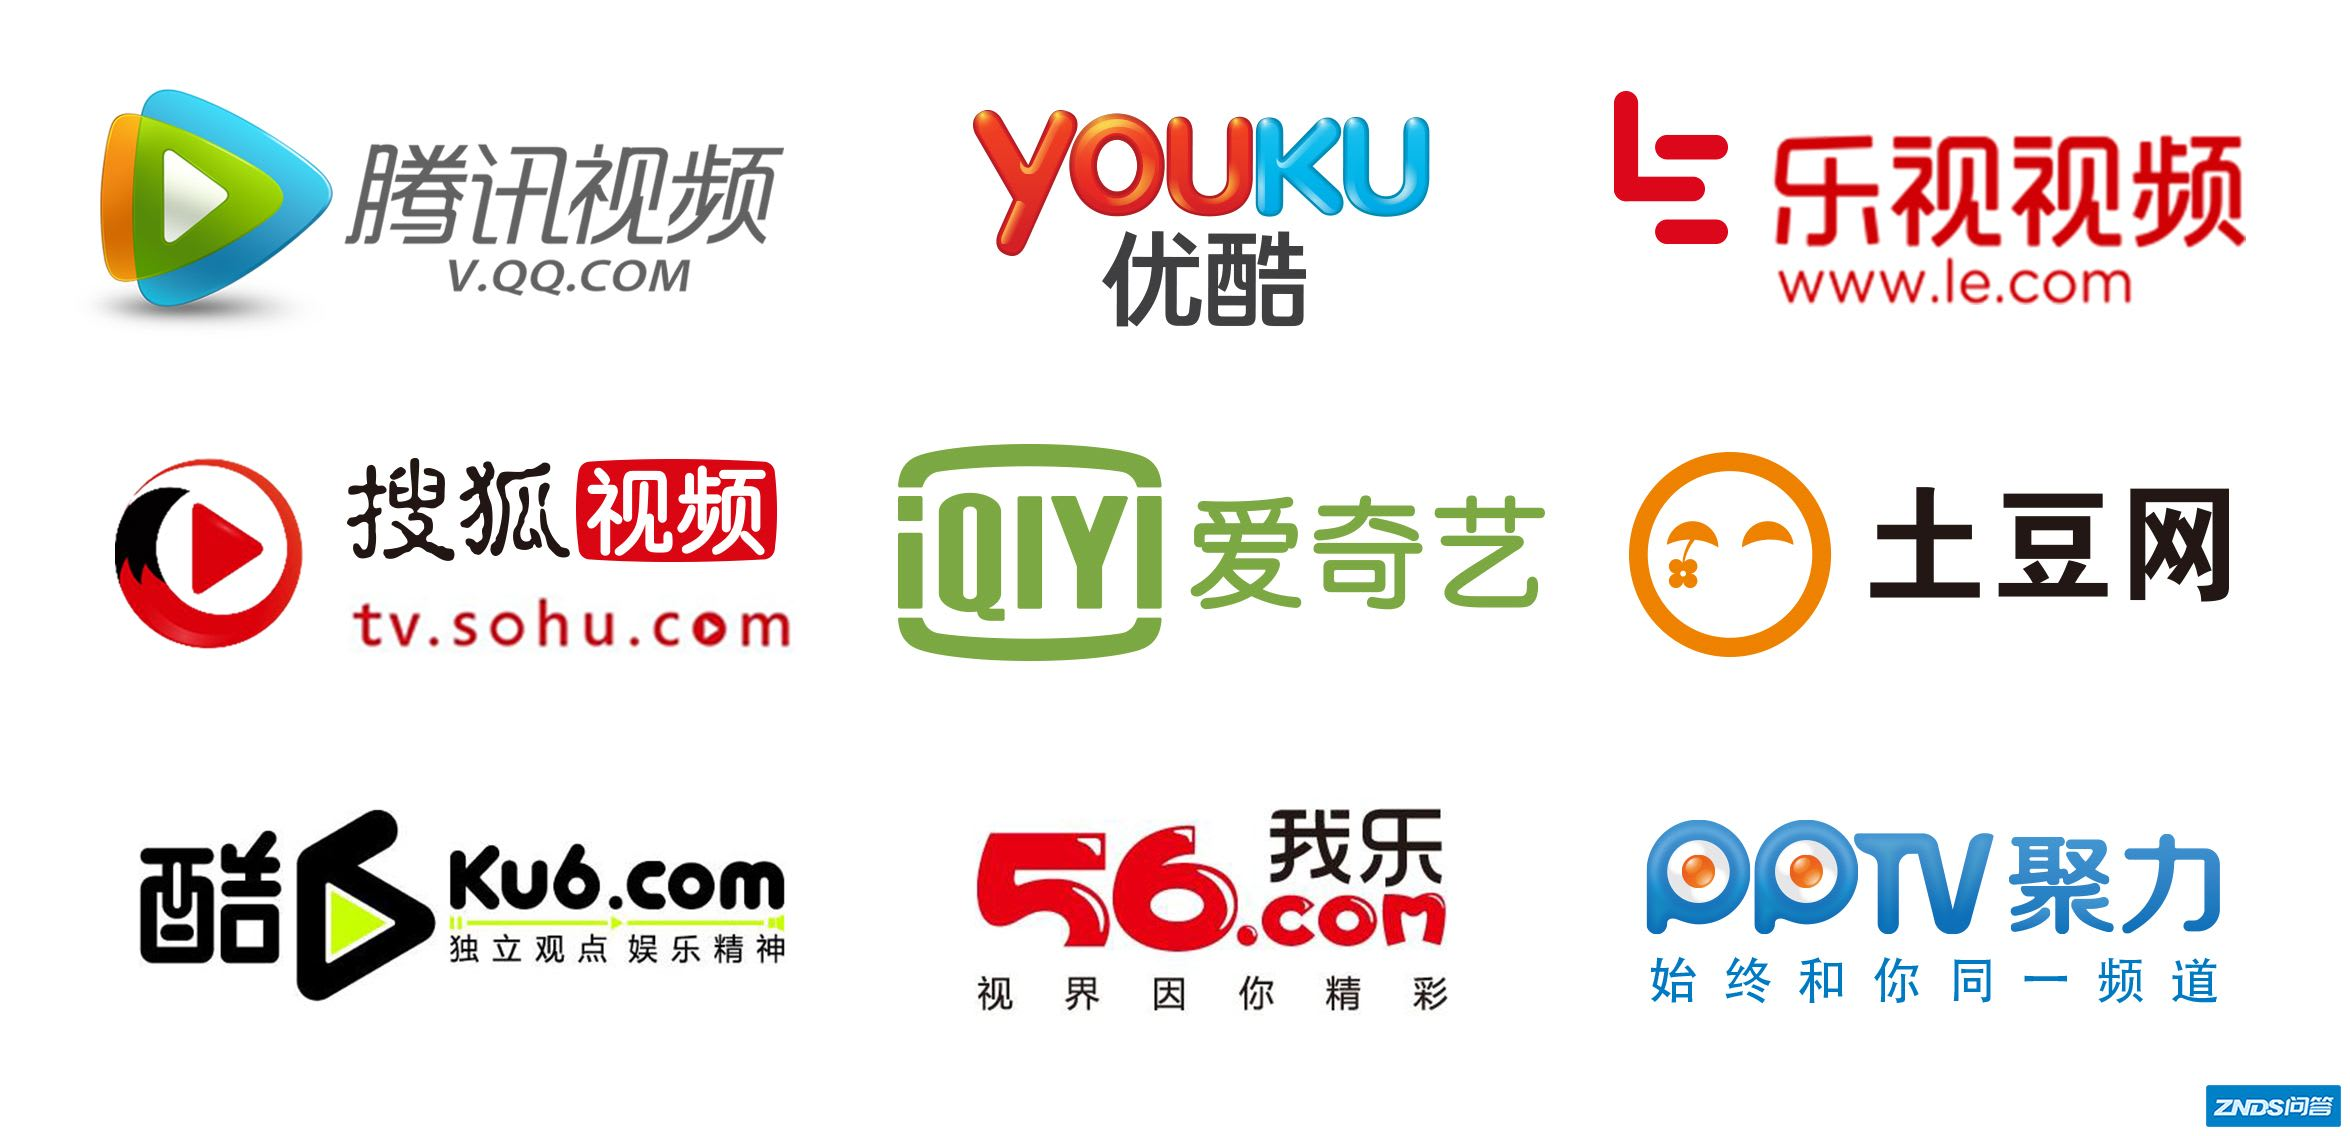 Upload Your Video To China Video Site Youku By Celinabaily Fiverr